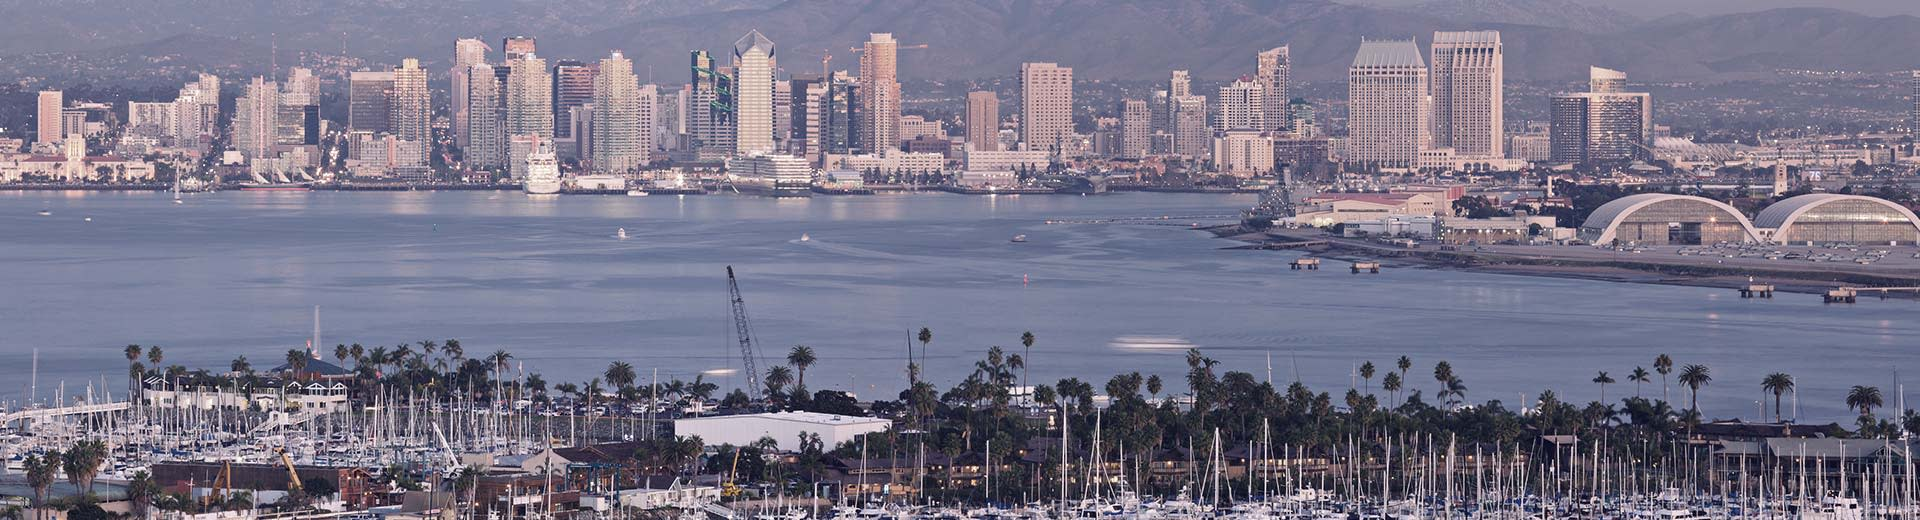 Palm trees dominate the foreground, while across a body of water lie the white, tall buildings of San Diego in the heat